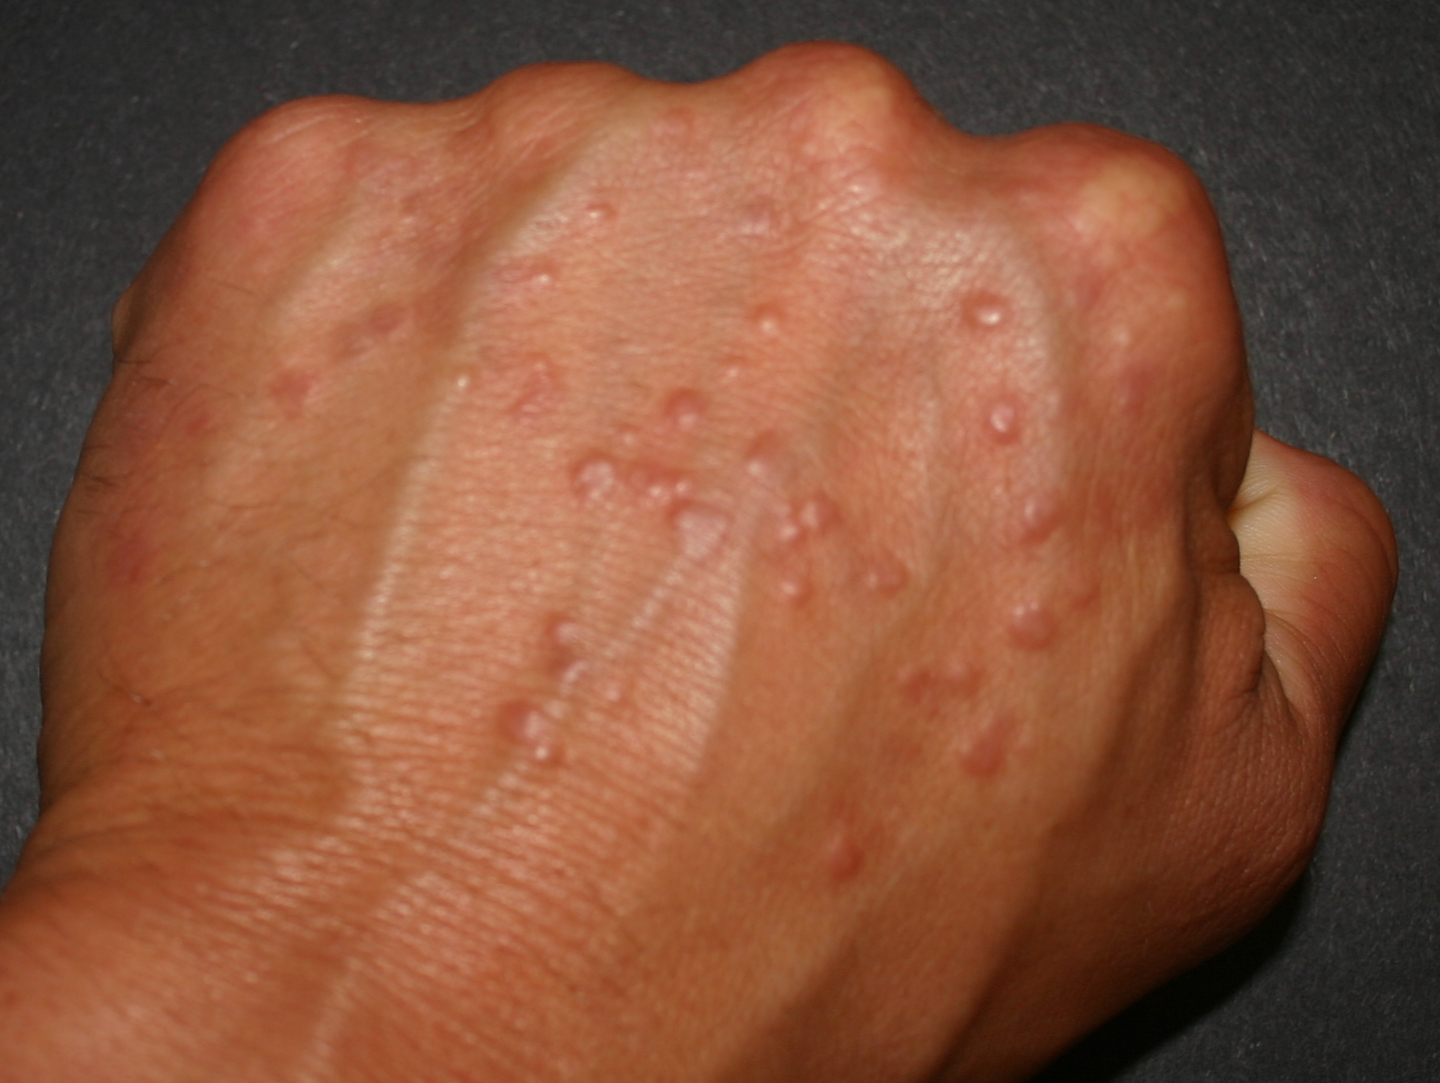 warts on hands not itchy